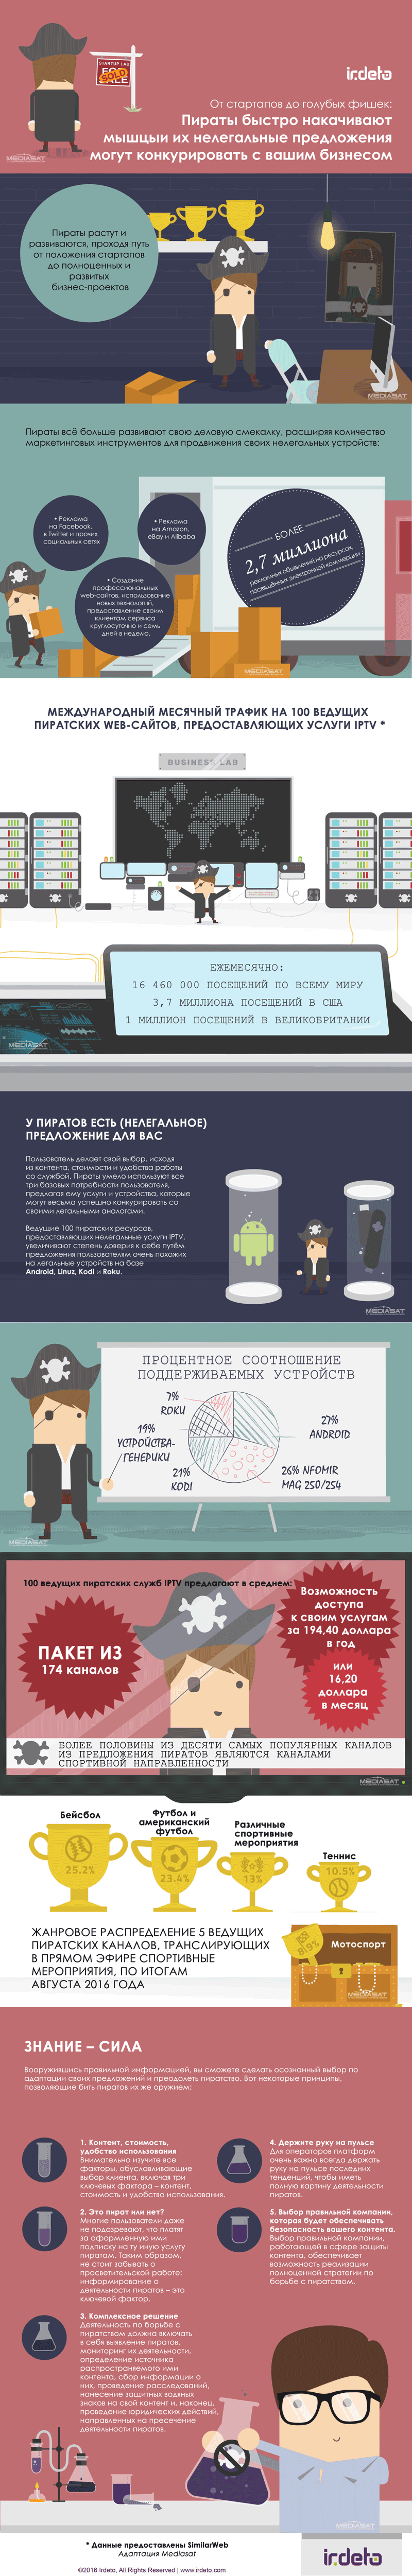 piracy-data-infographic_final